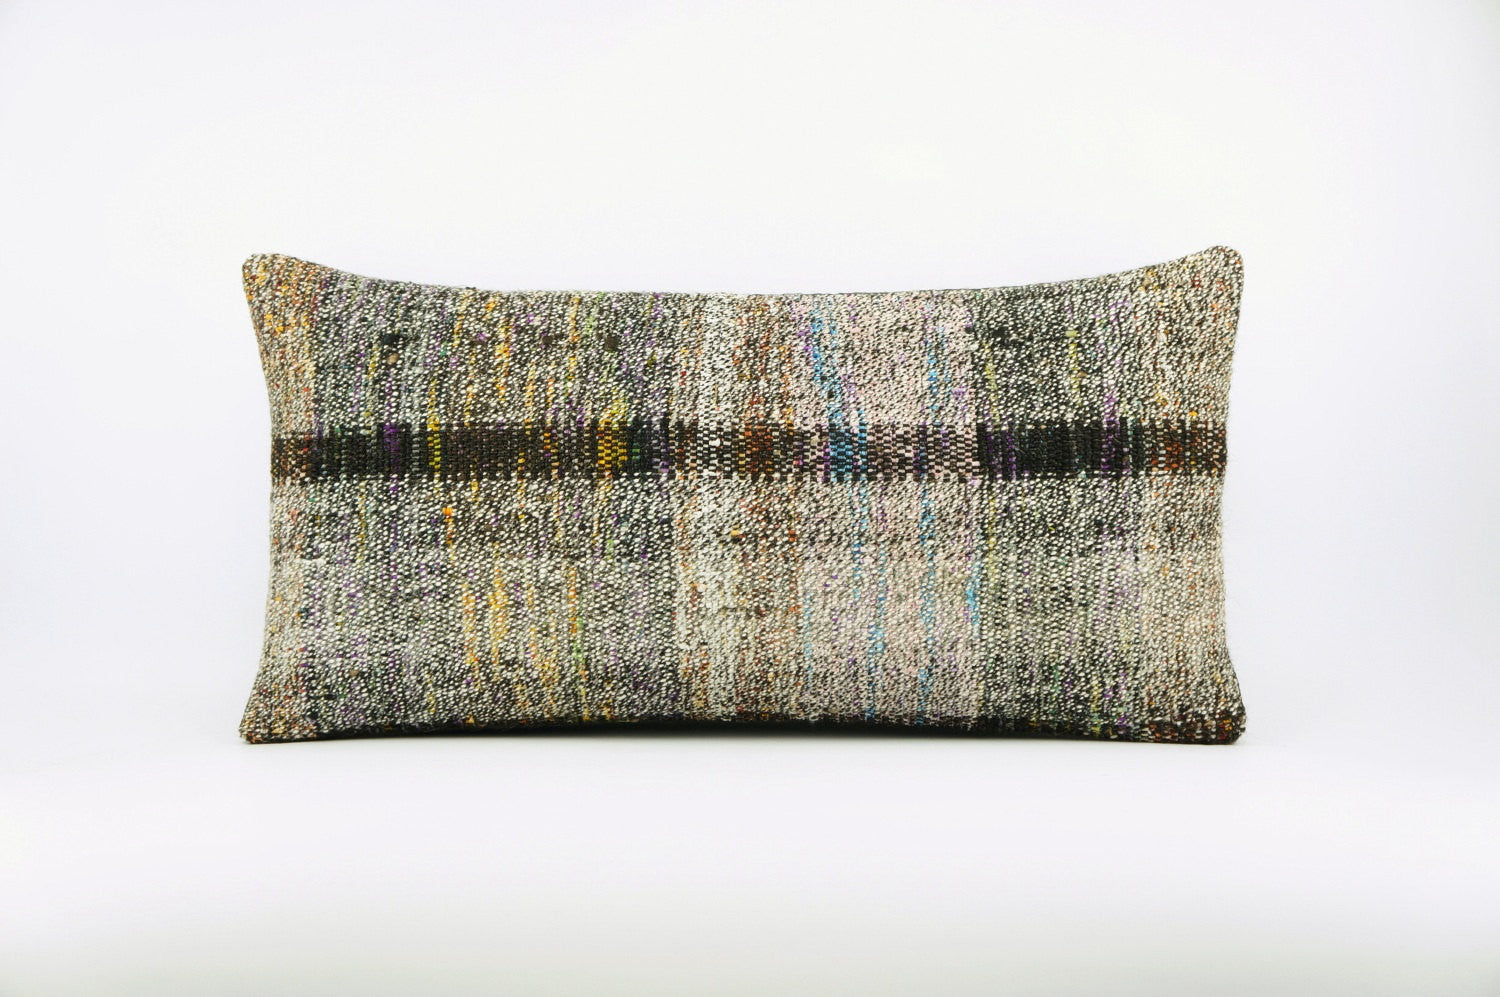 12x24  Hand Woven wool colourfull  multi colour striped decorative outdoor  Kilim Pillow cushion 1668 - kilimpillowstore  - 1